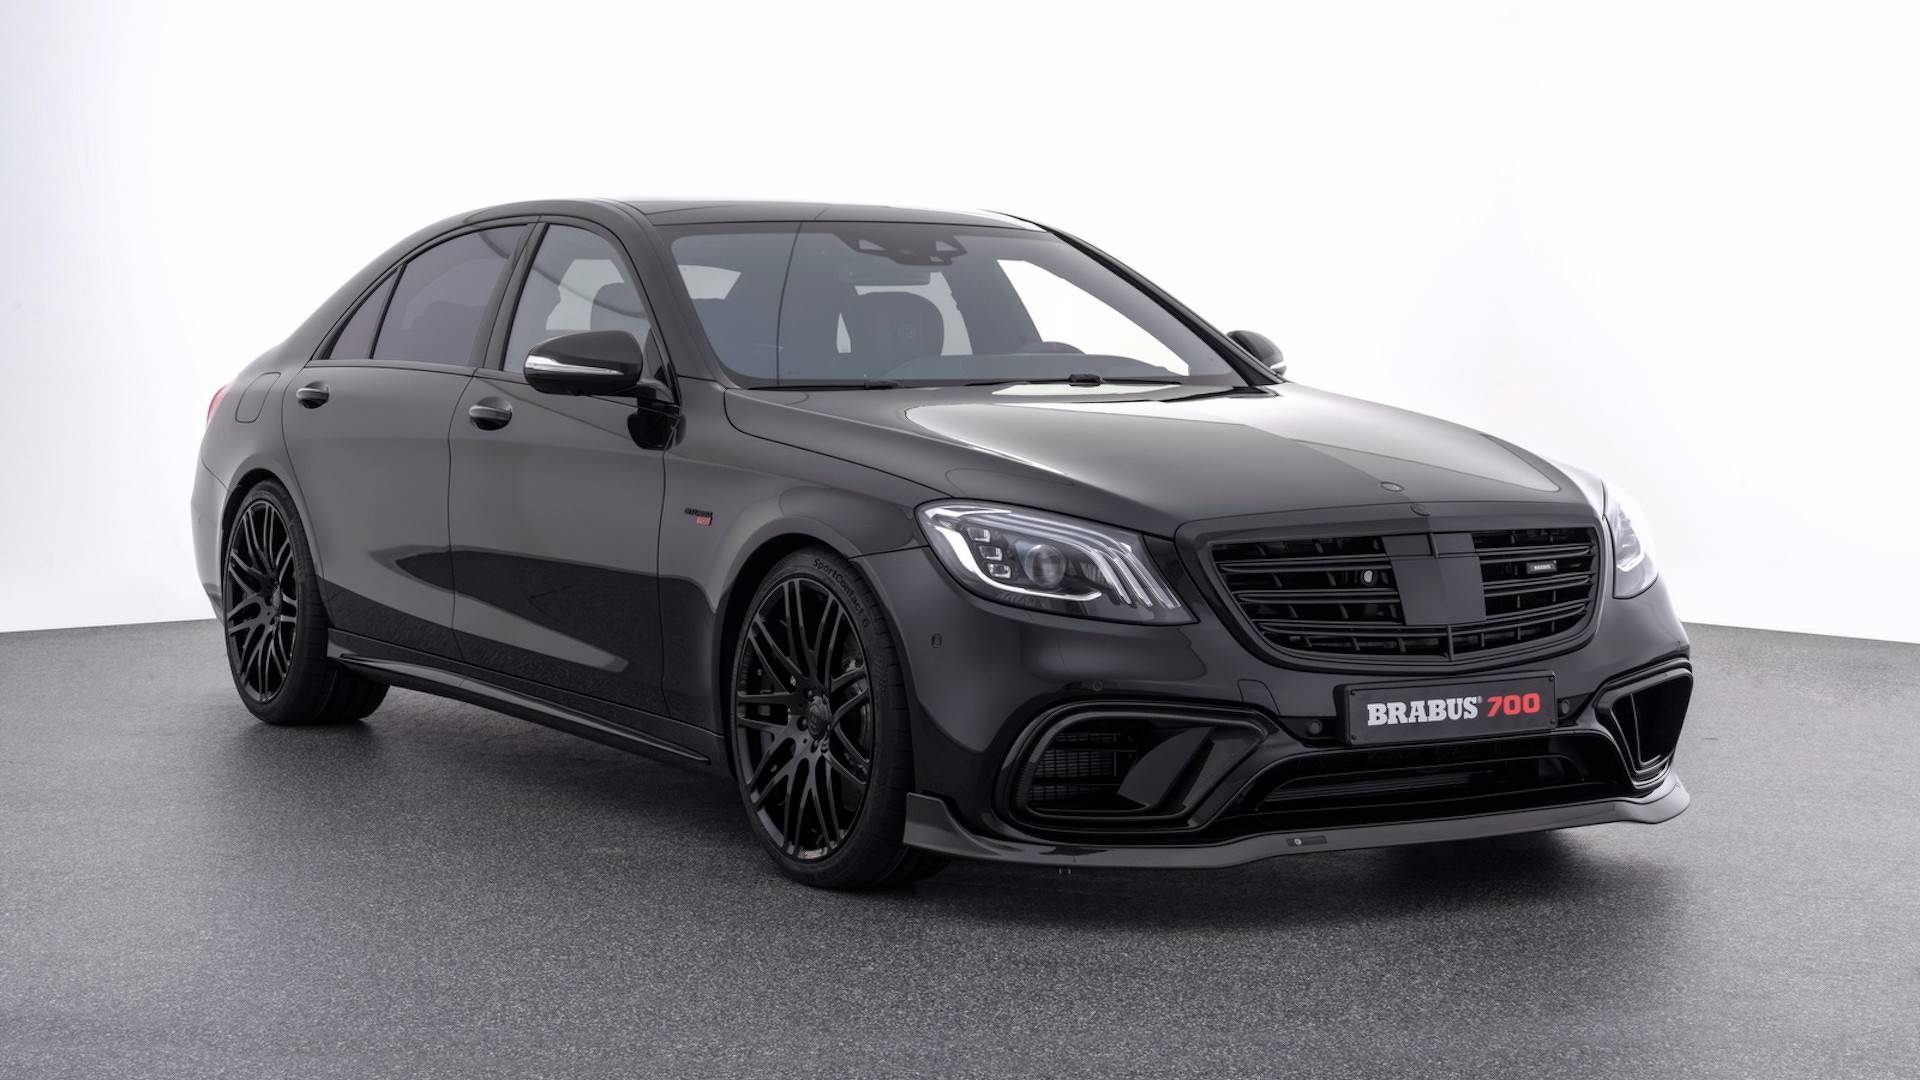 brabus mercedes amg s63 maybach s650 dialed up to 700 and 900 hp. Black Bedroom Furniture Sets. Home Design Ideas